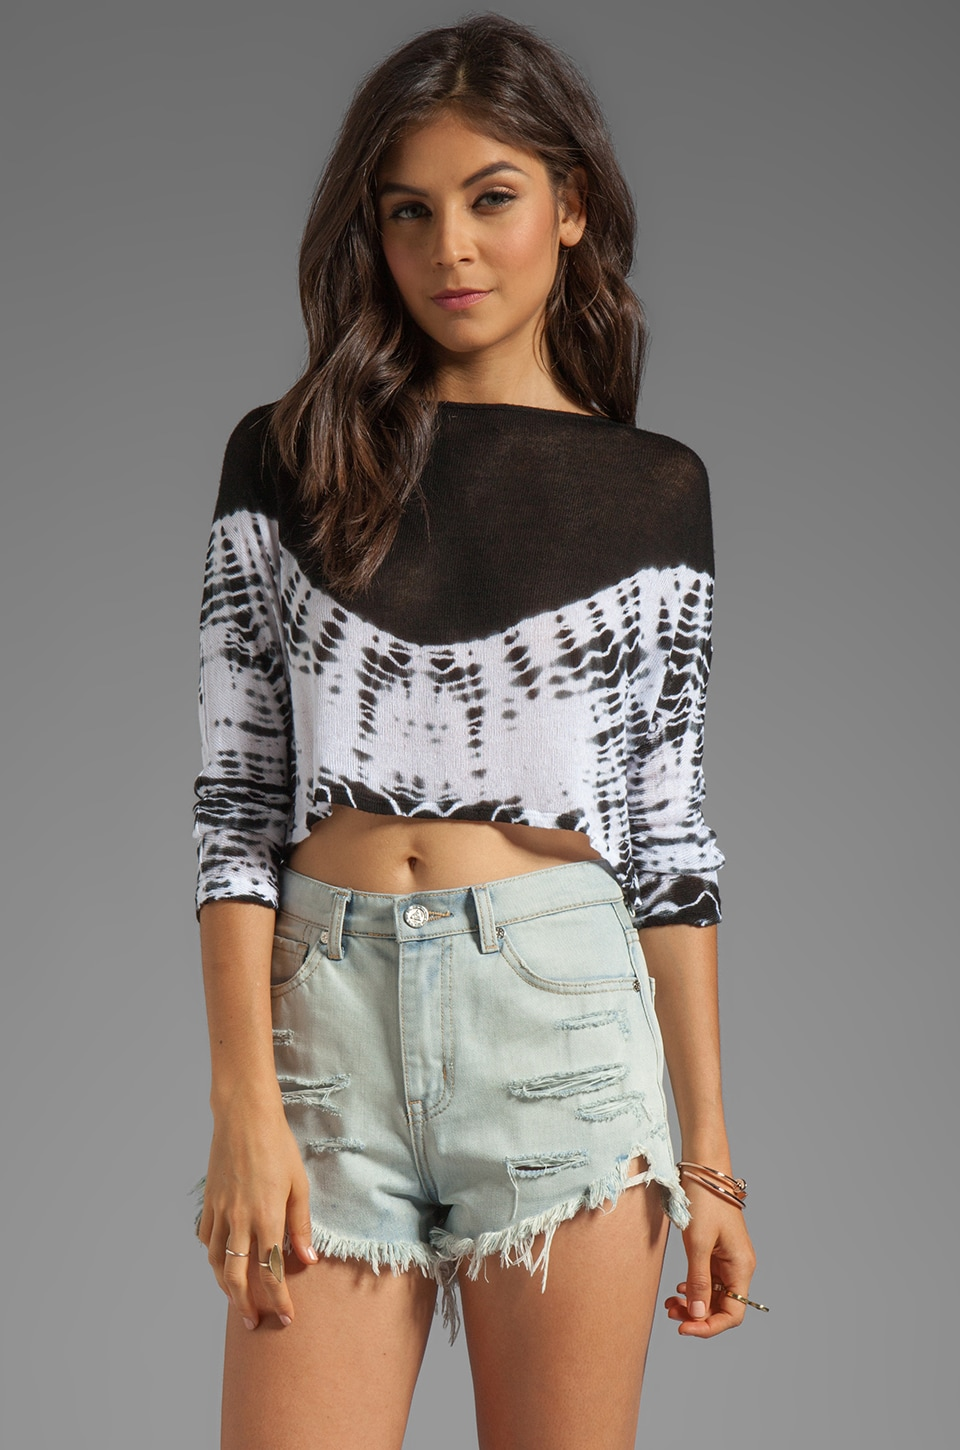 WOODLEIGH Amile Alligator Tie Dye Crop Top in Charcoal